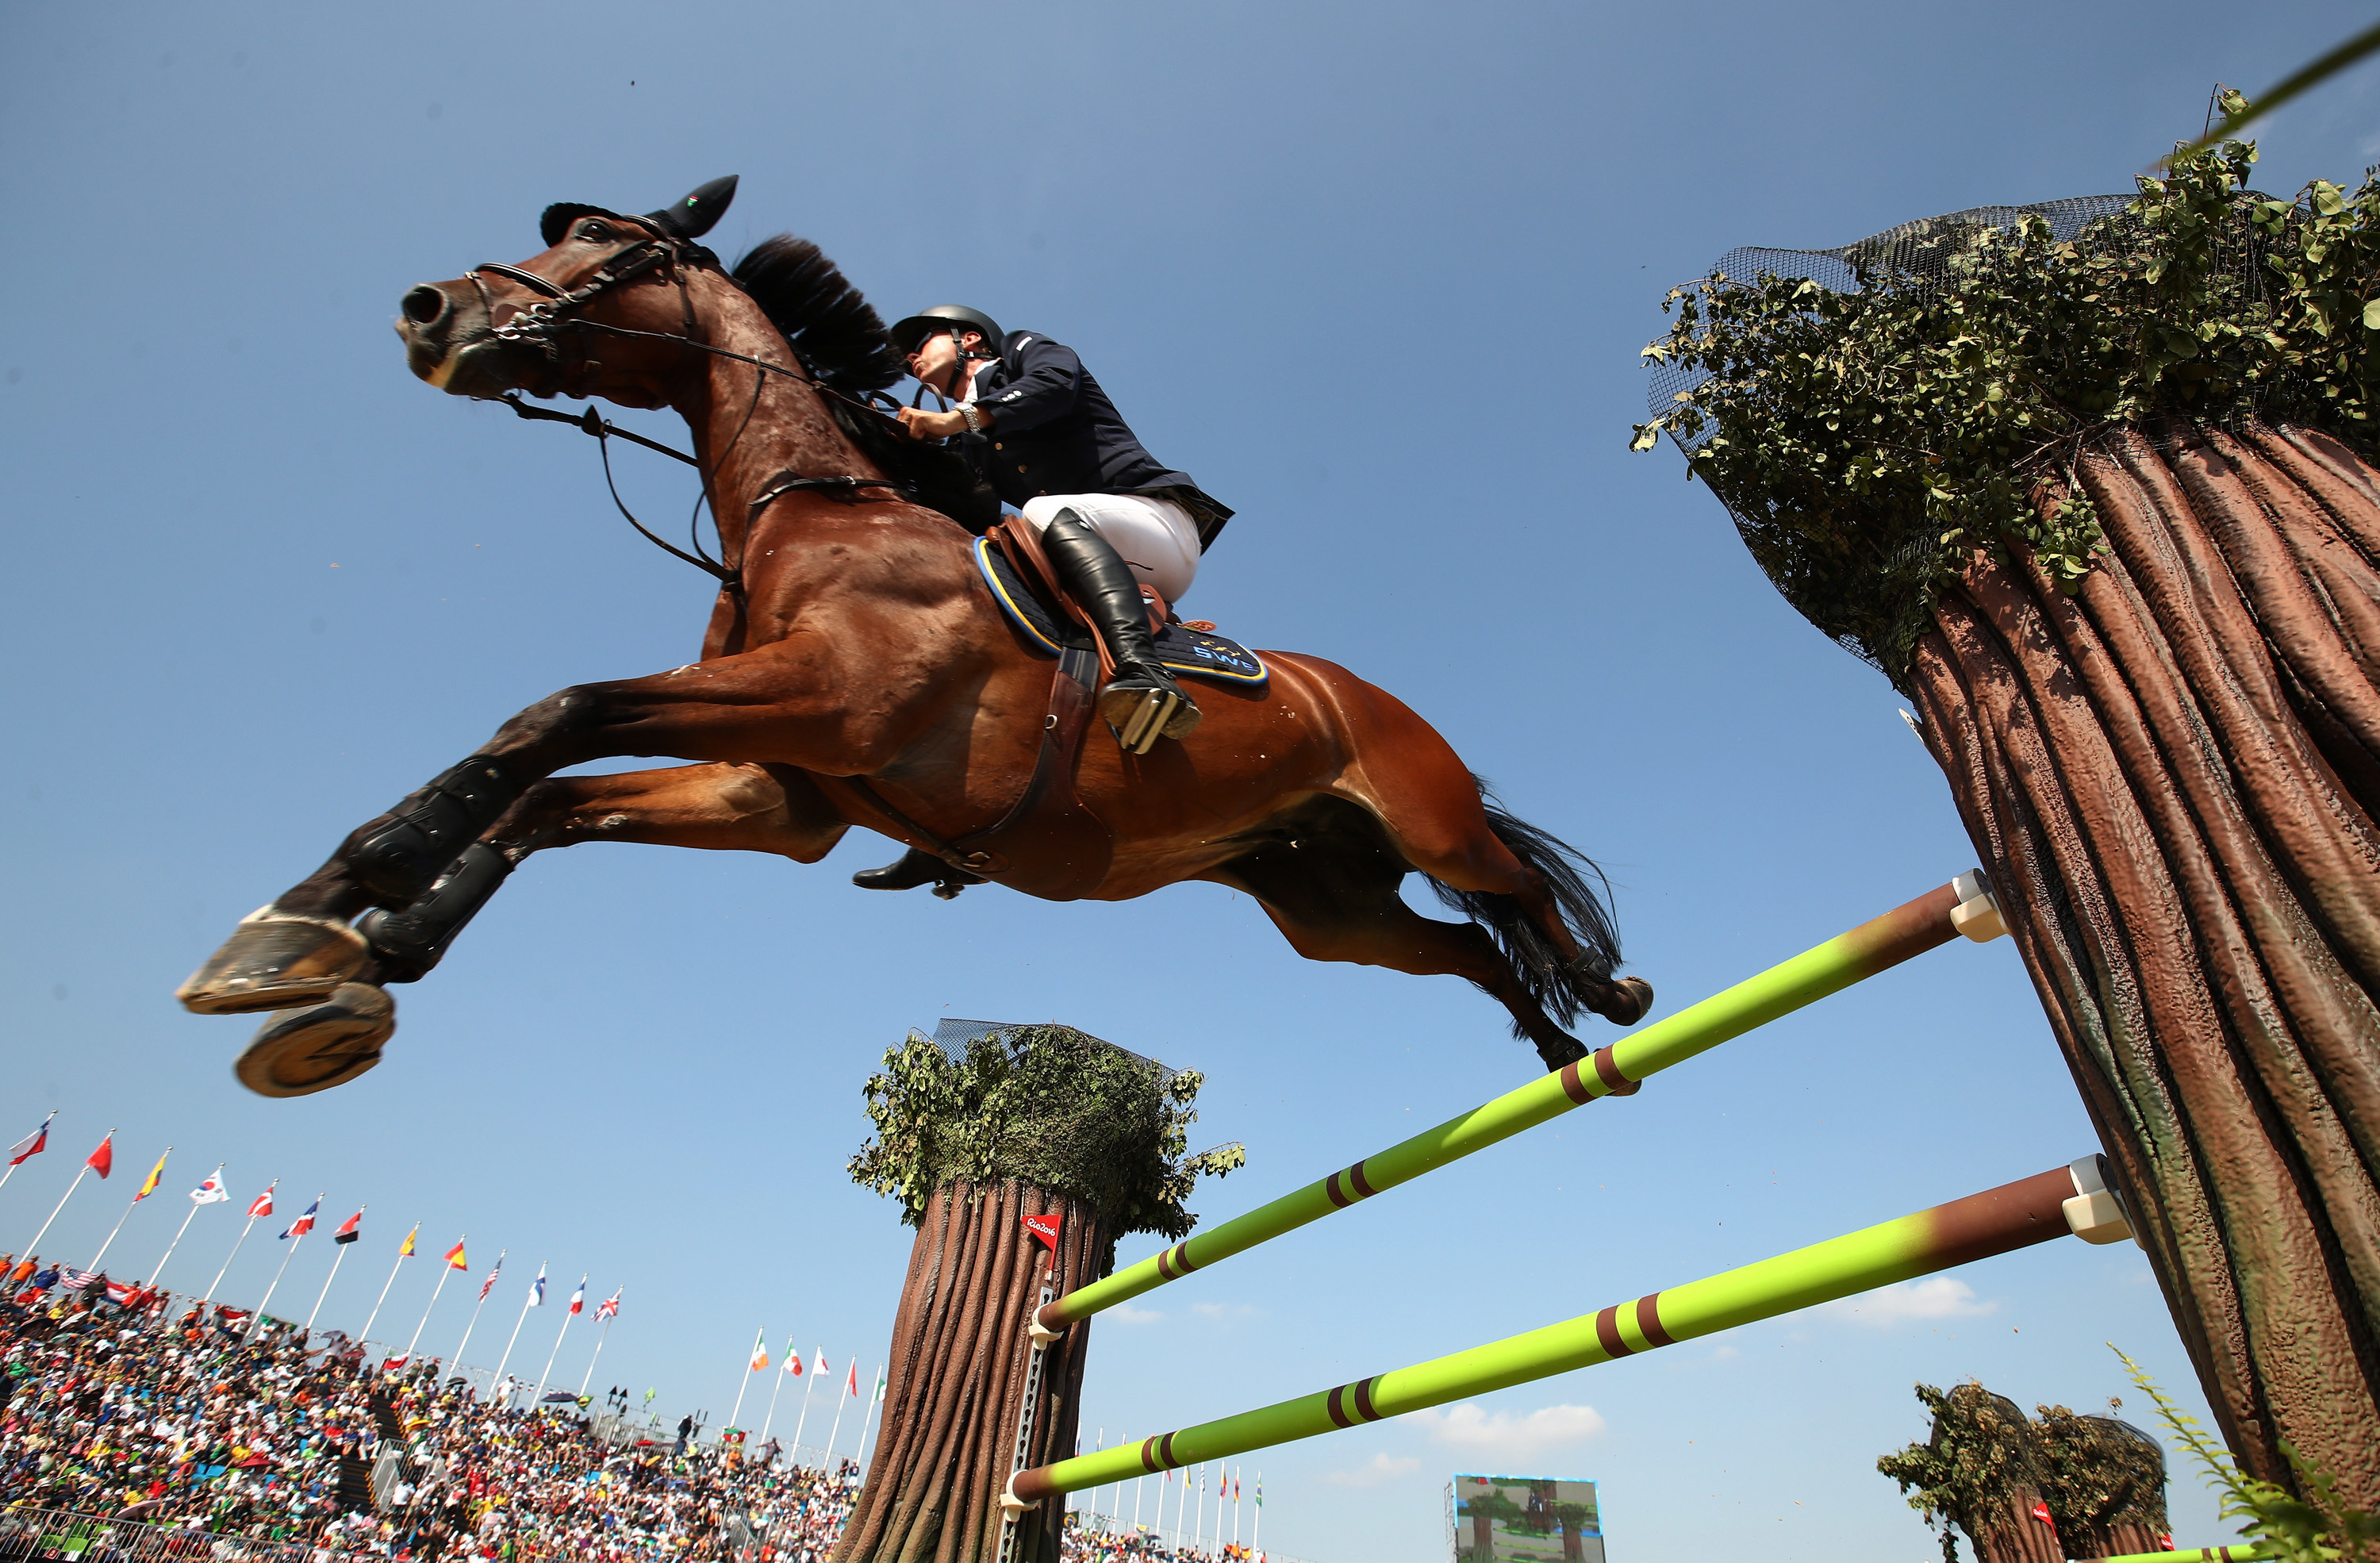 Horse leaps over hurdle with jockey on their back